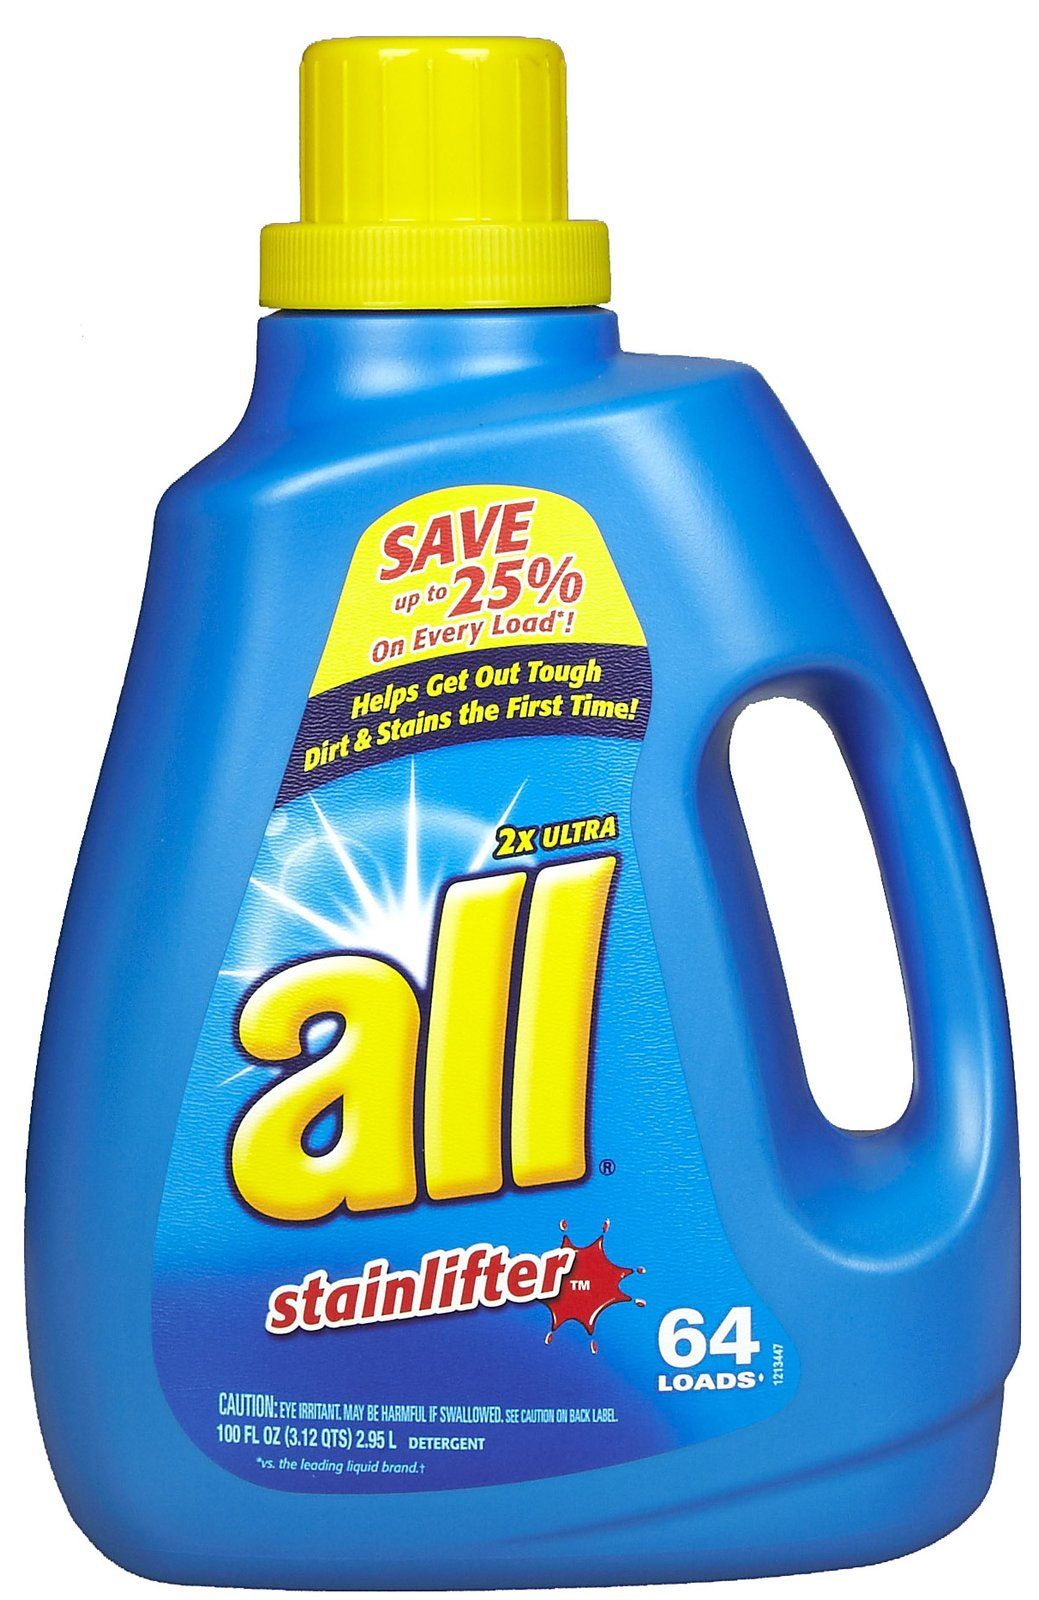 Clothes detergent coupons